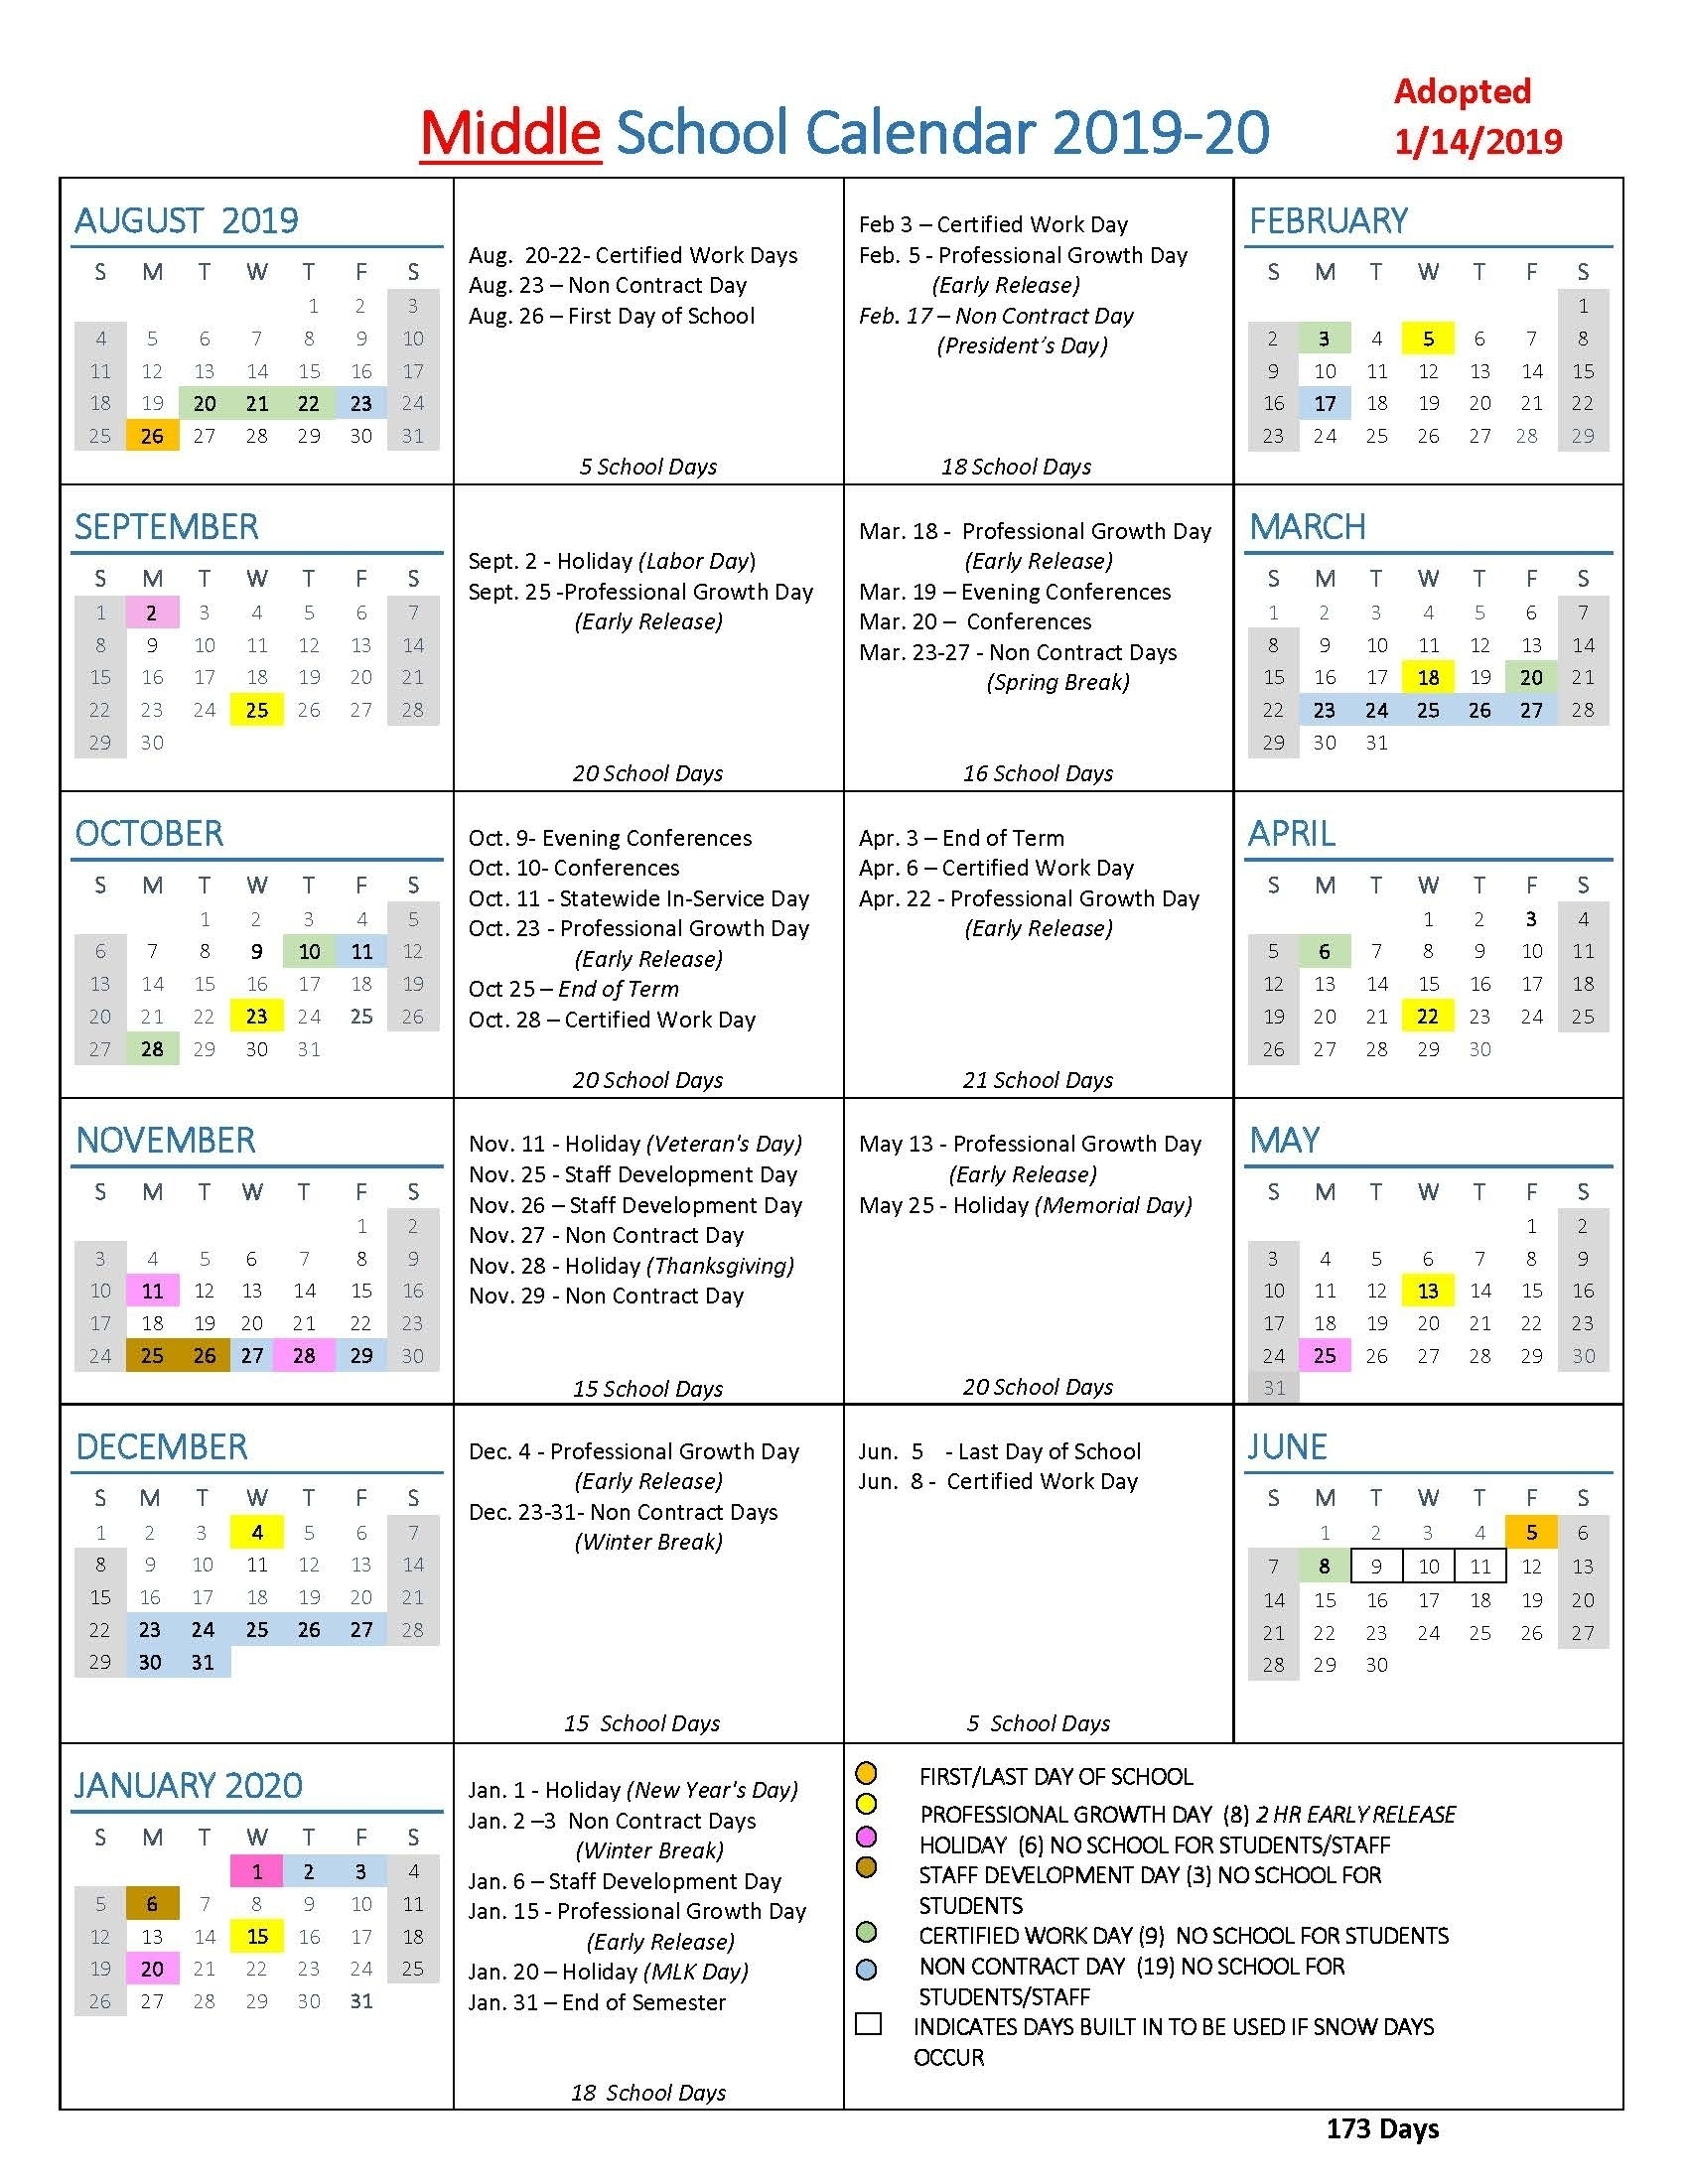 Calendar With All The Special Days In 2020 - Calendar for 2020 Special Days Of The Year